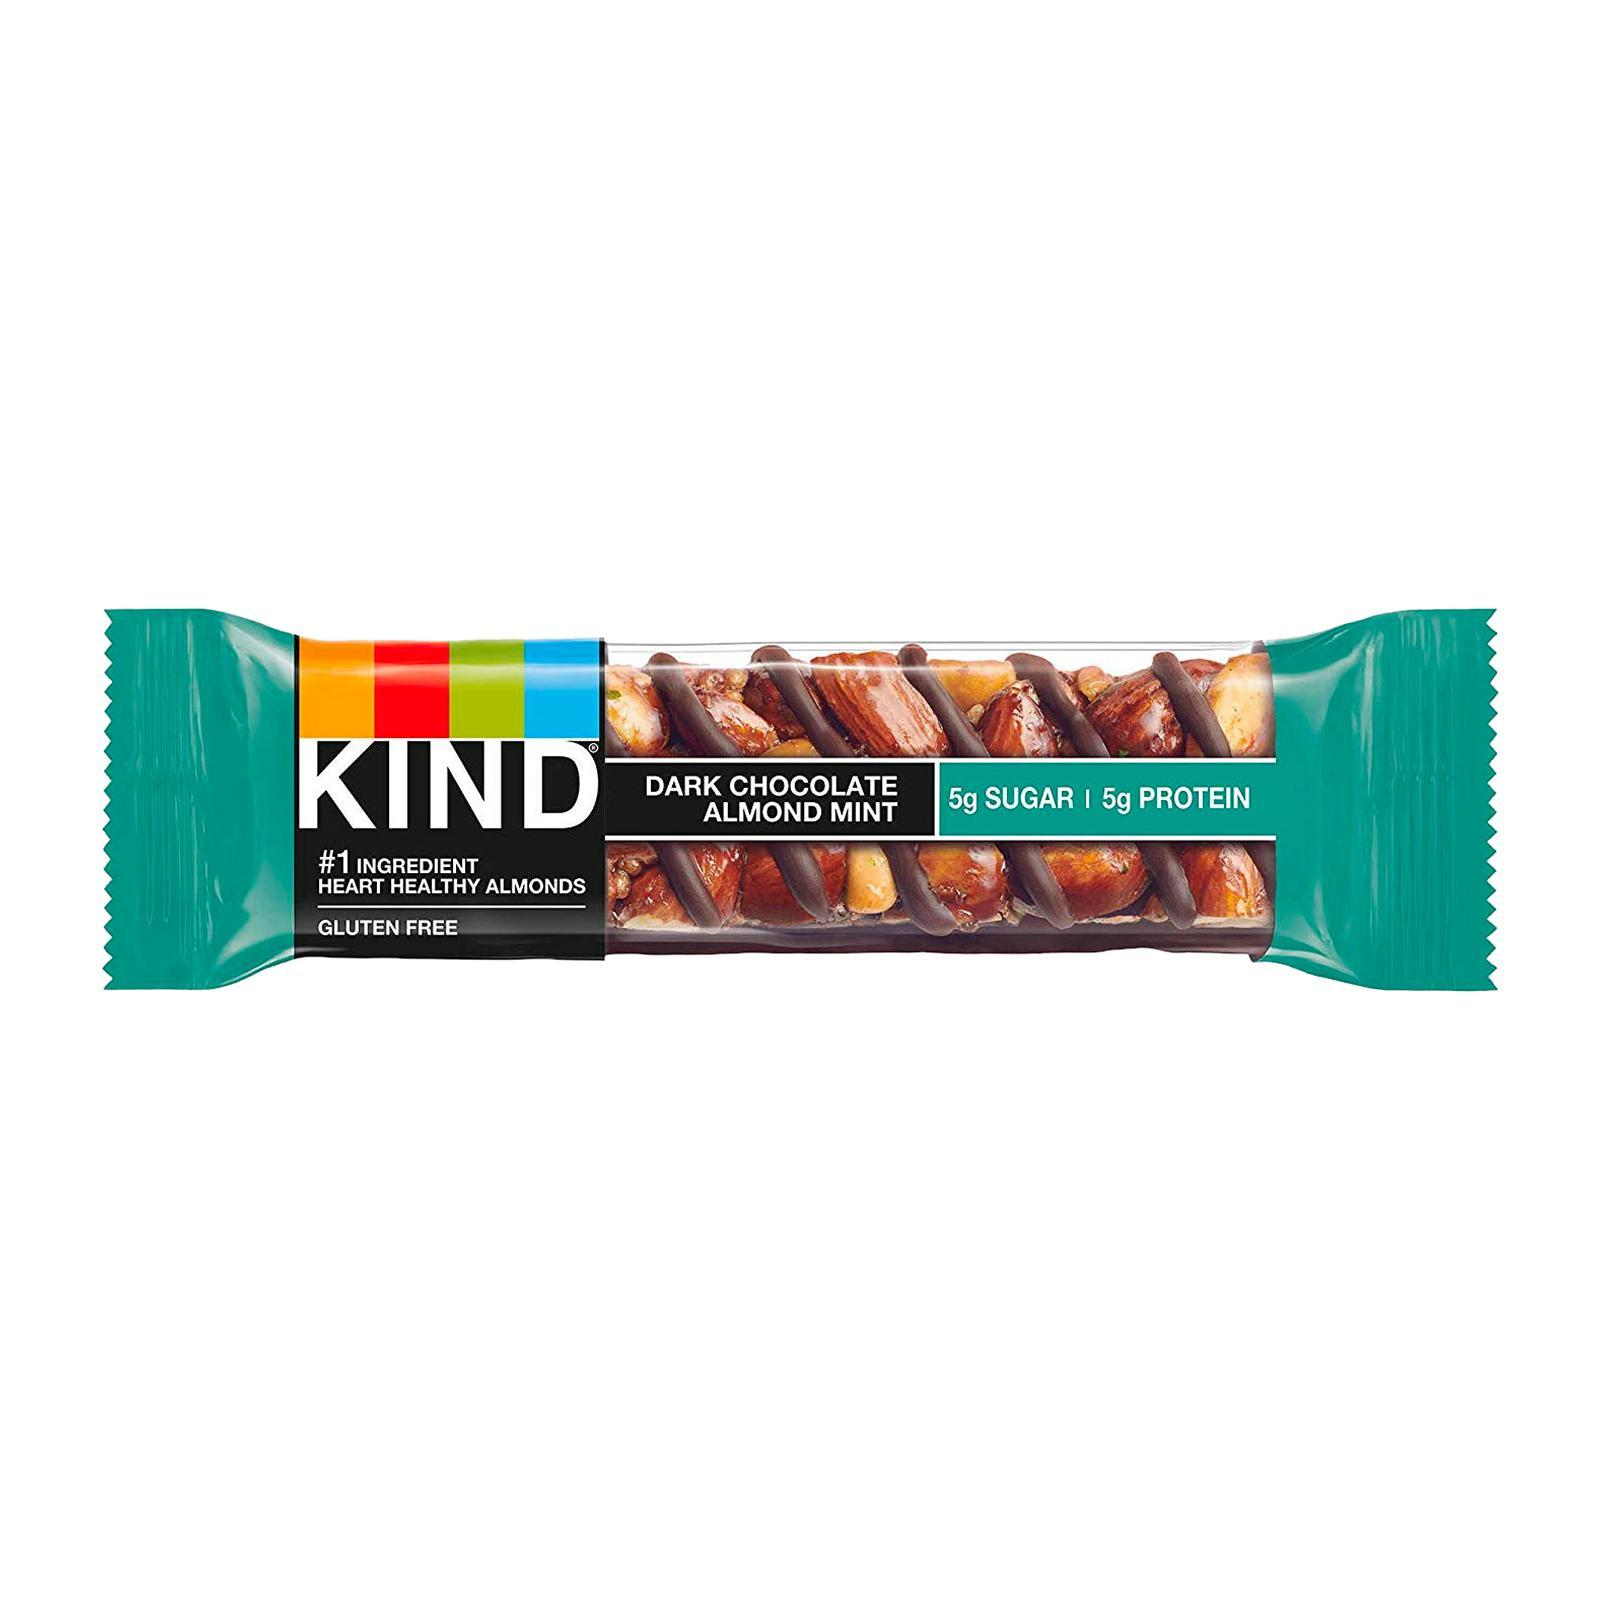 KIND Fruit and Nut Dark Chocolate Almond and Mint Bar - By Wholesome Harvest